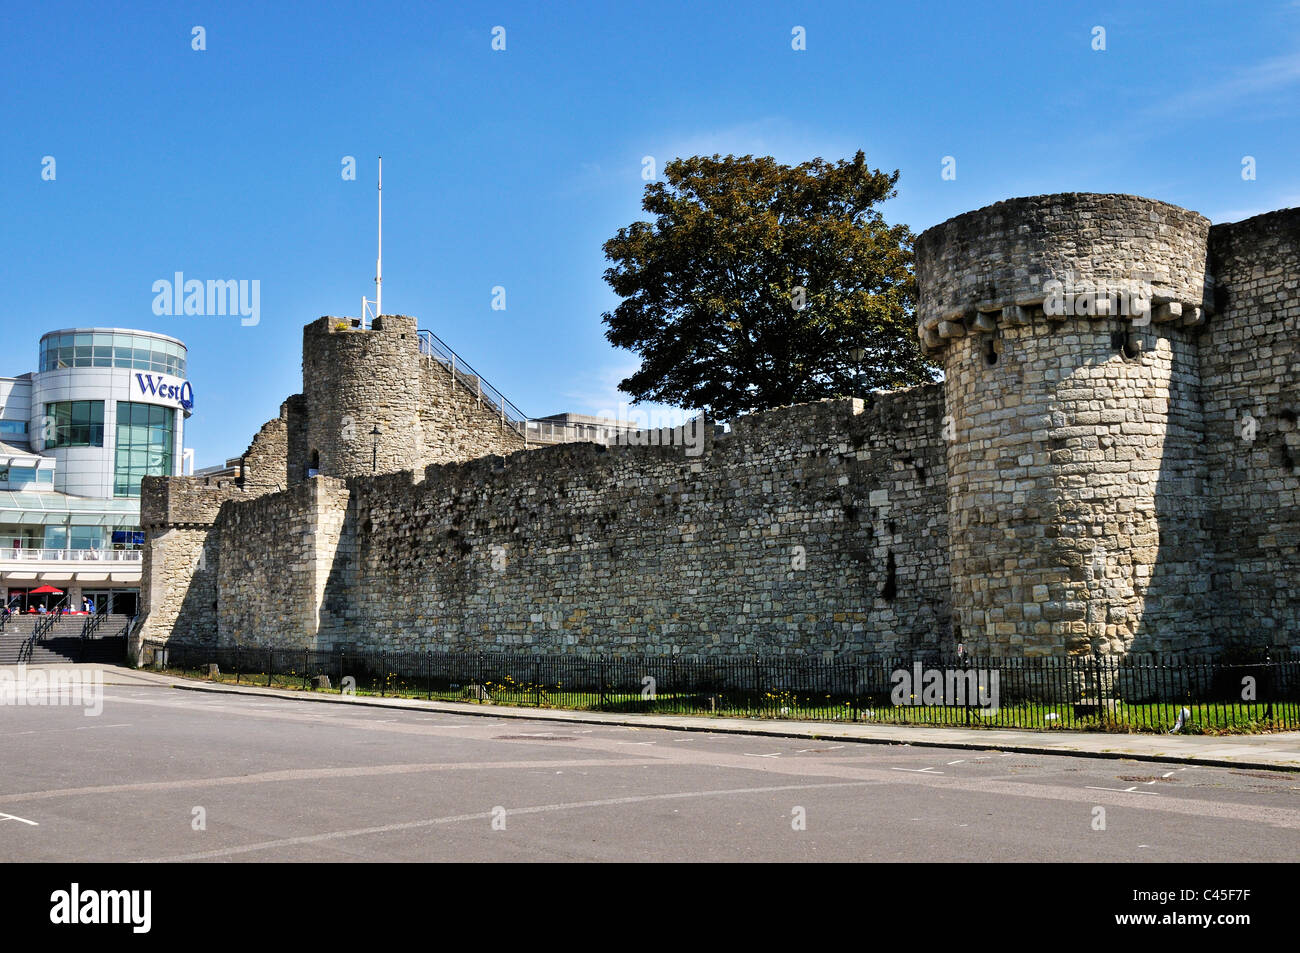 The defensive walls and towers of the medieval town of Hampton in front of the modern shopping centre of West Quay, - Stock Image